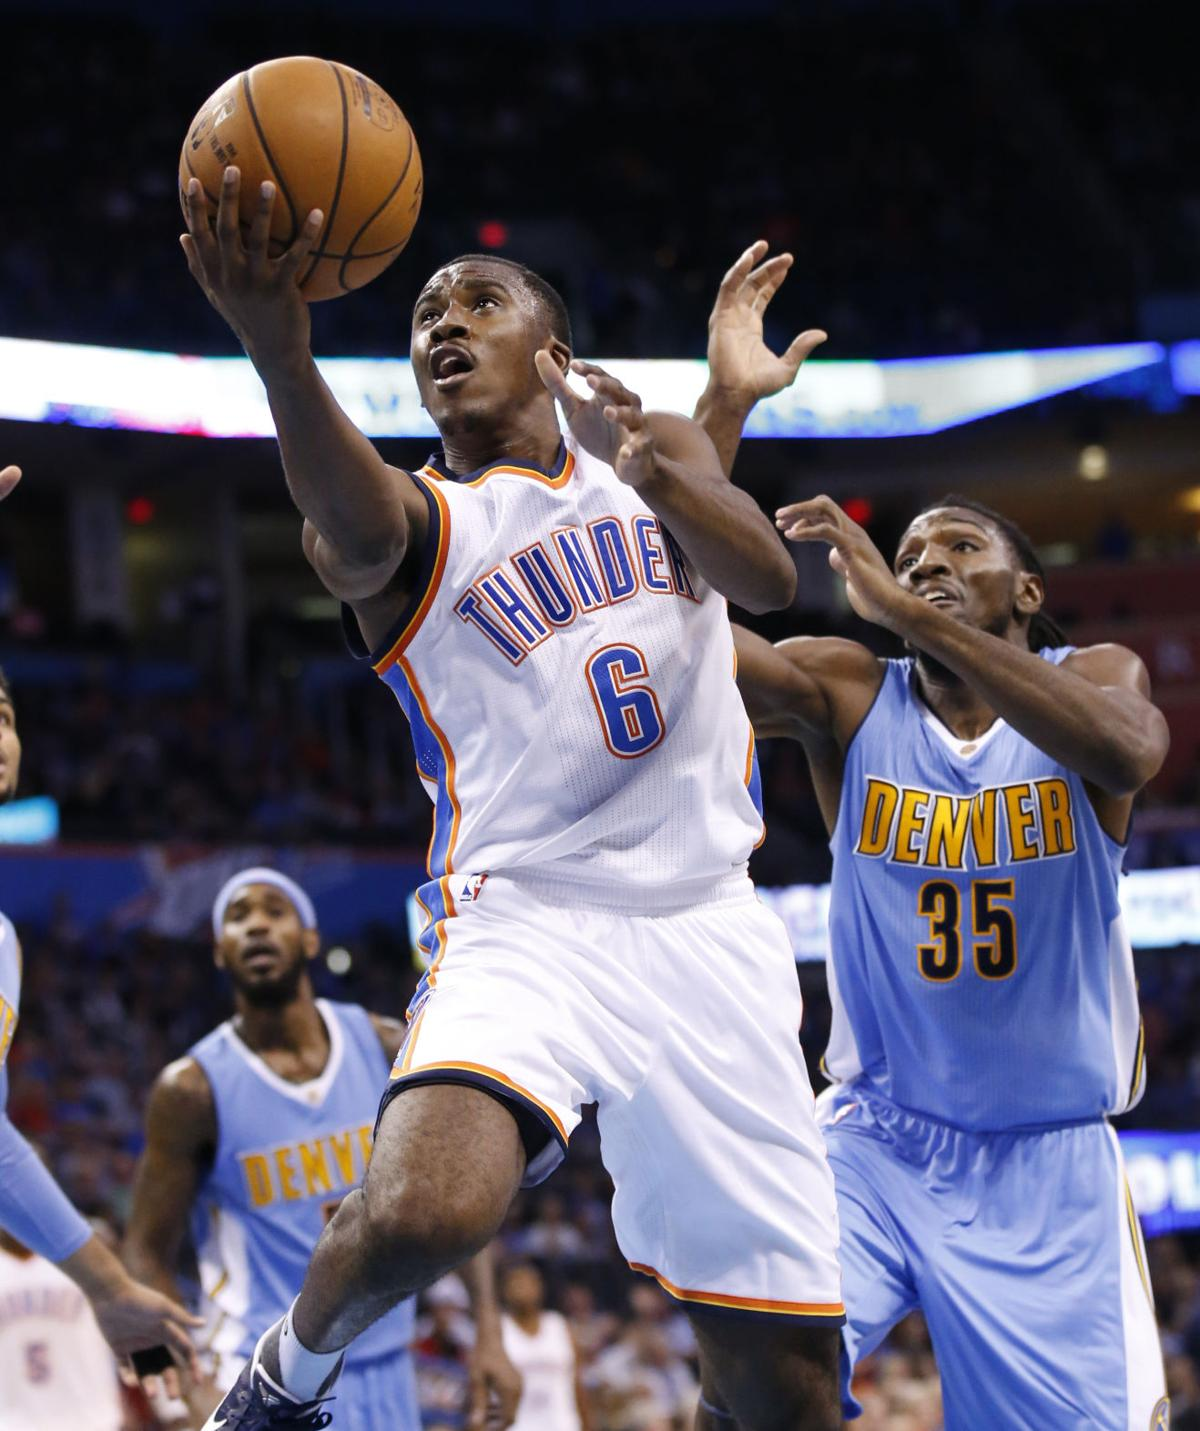 Breaking Down The Thunder's Choice Of Christon Over Price